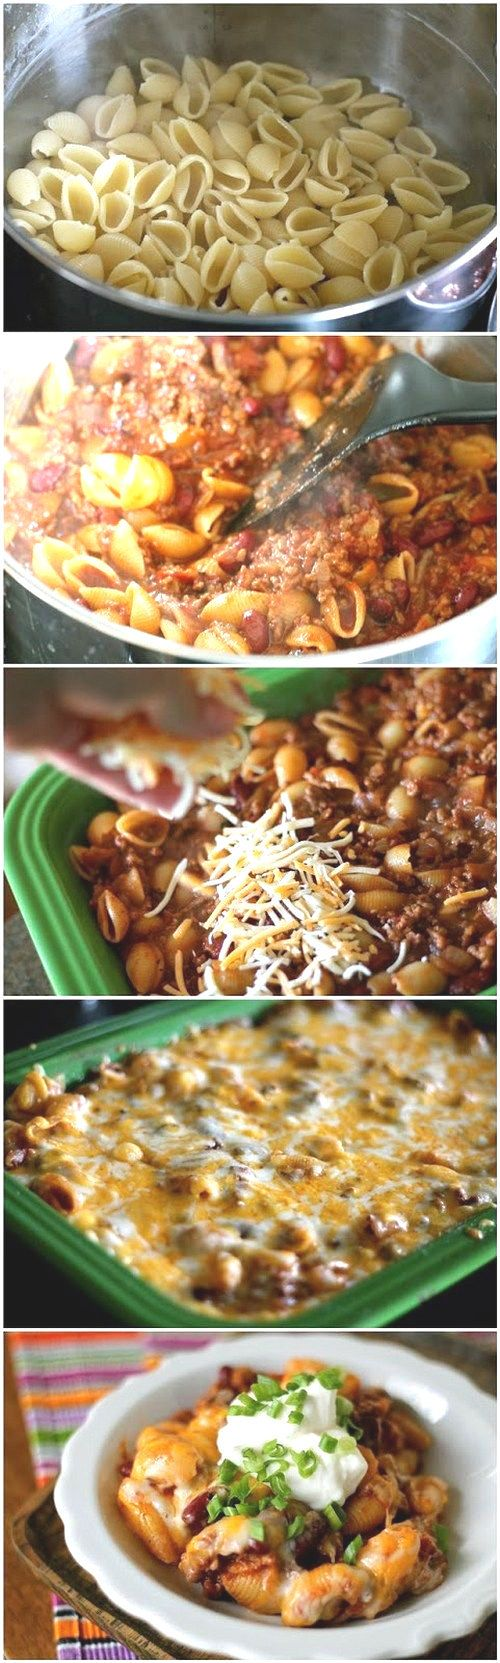 Chili Pasta Bake Recipe // Perfect for Dinner Dish for Chilly Weather